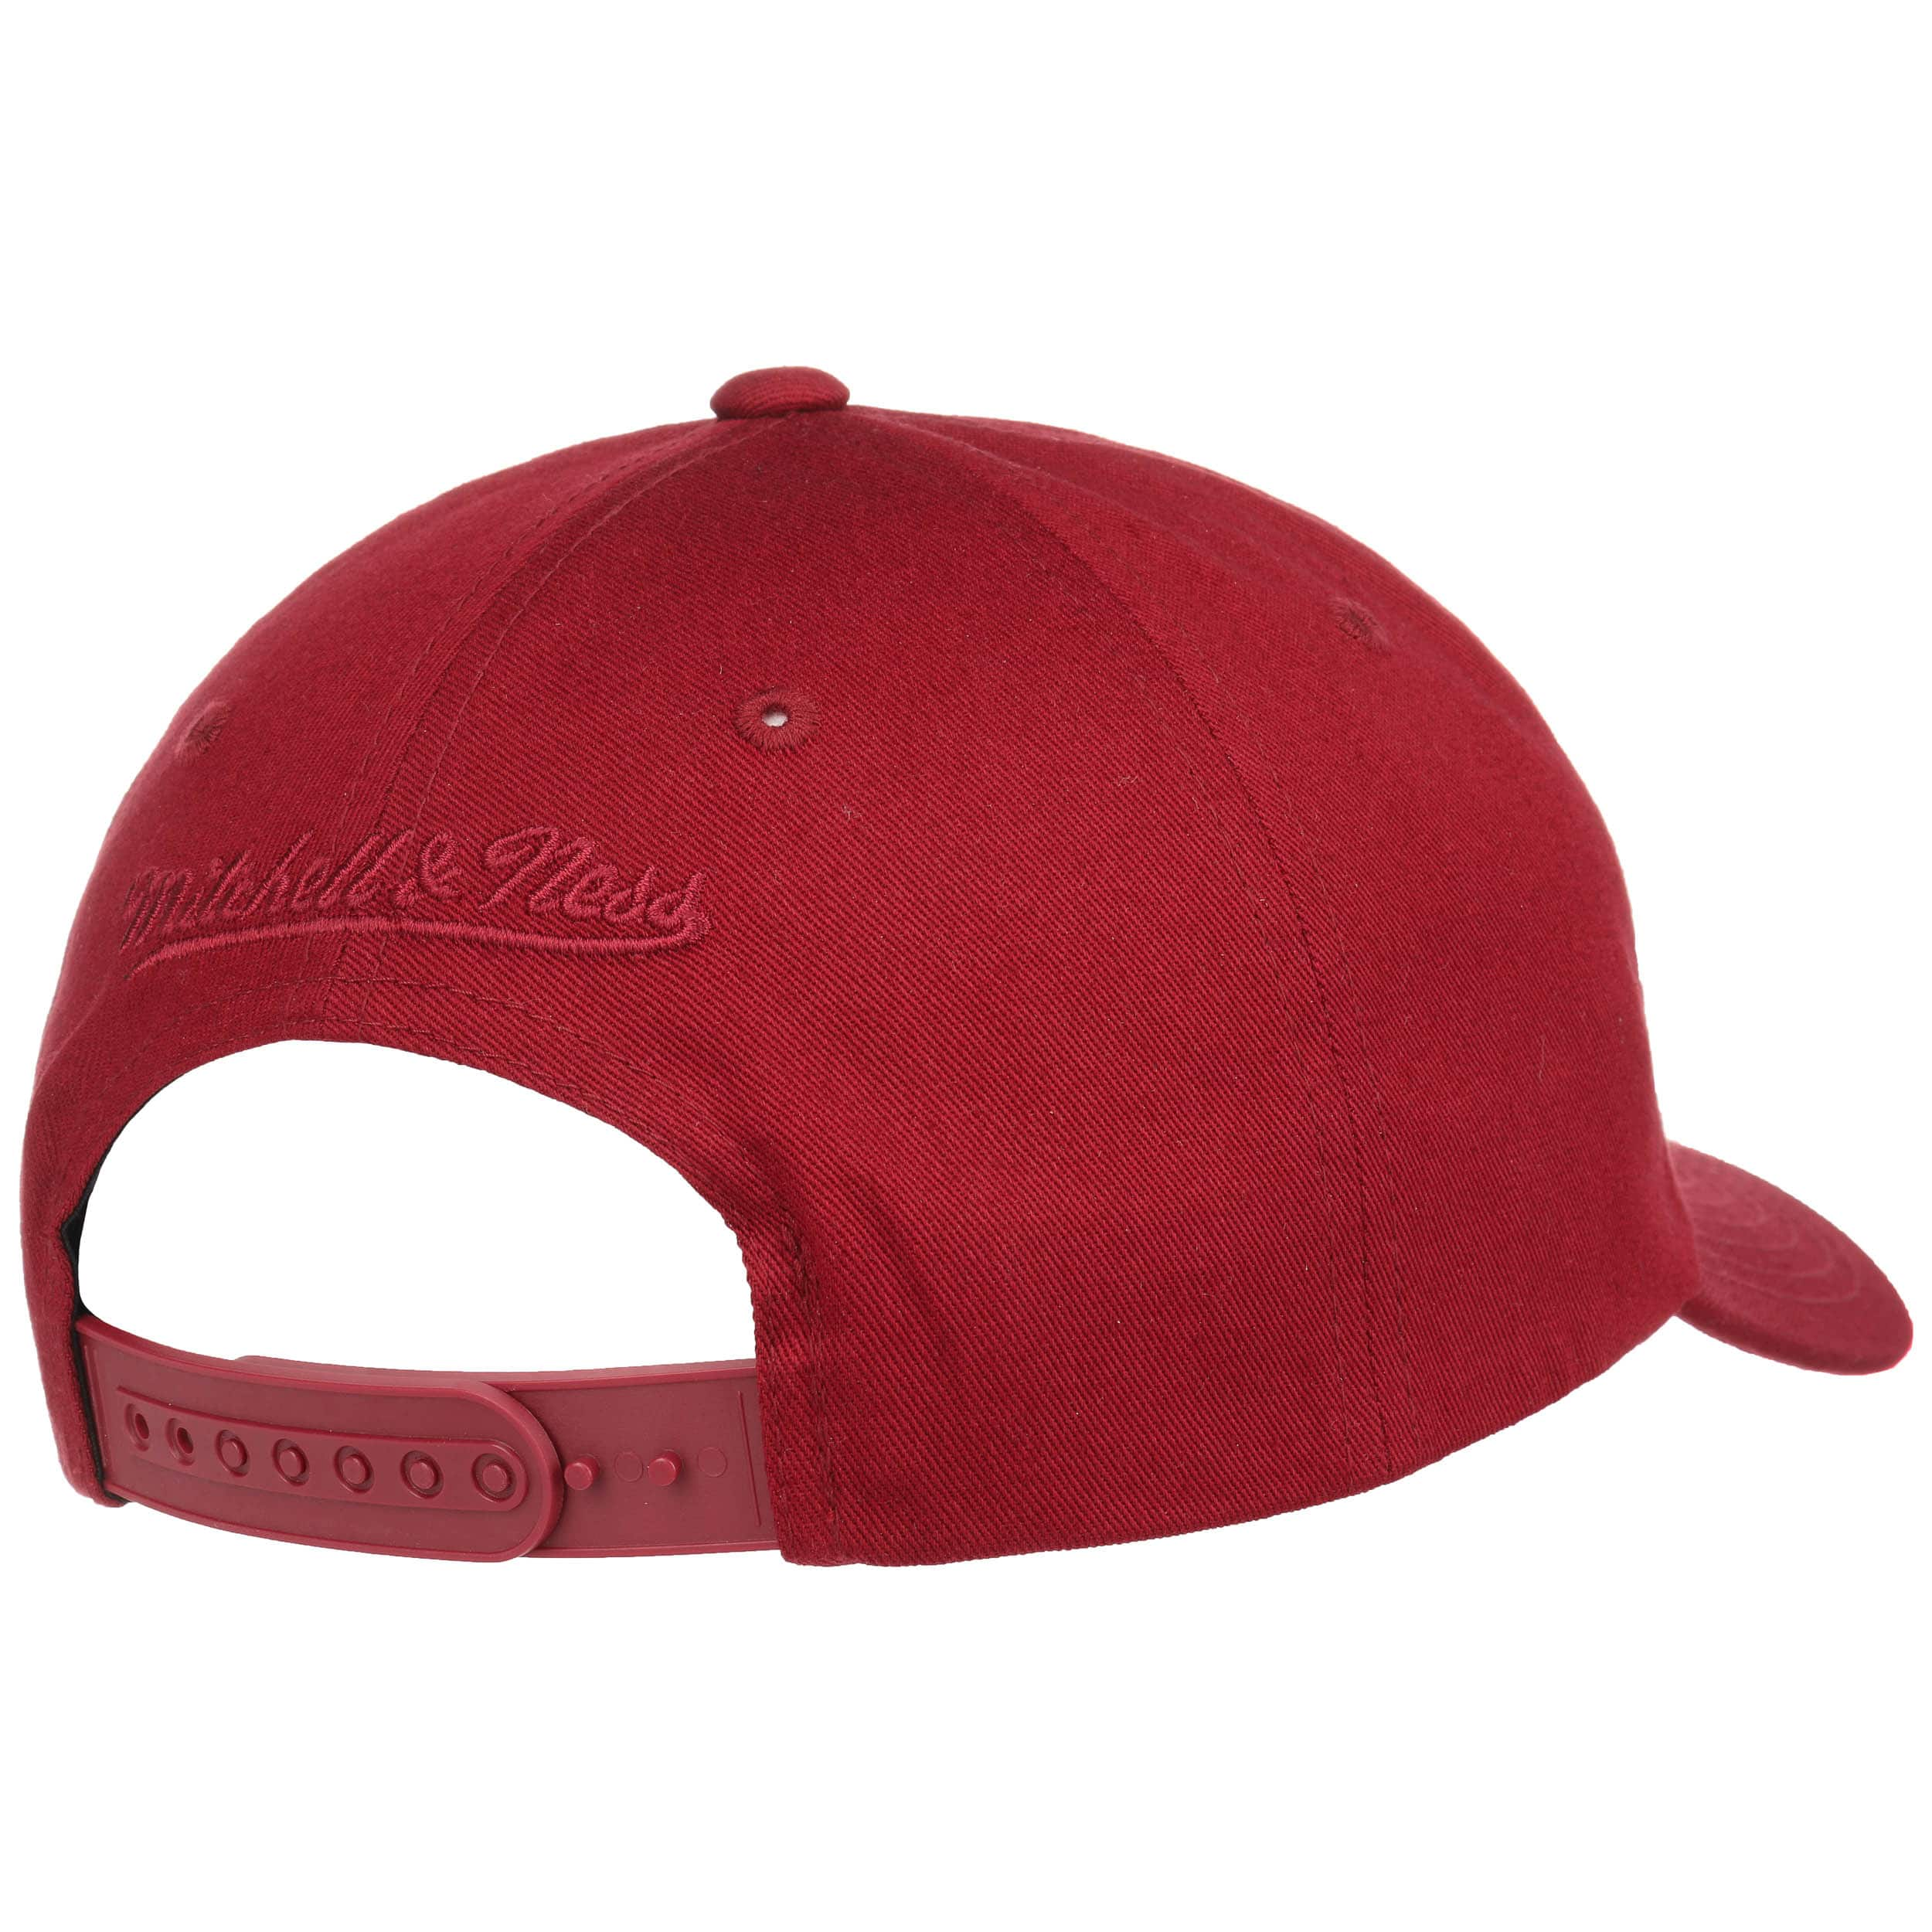 ... Cappellino Dribbler by Mitchell   Ness - rosso bordeaux 3 ... 4cd3afcbb8b8